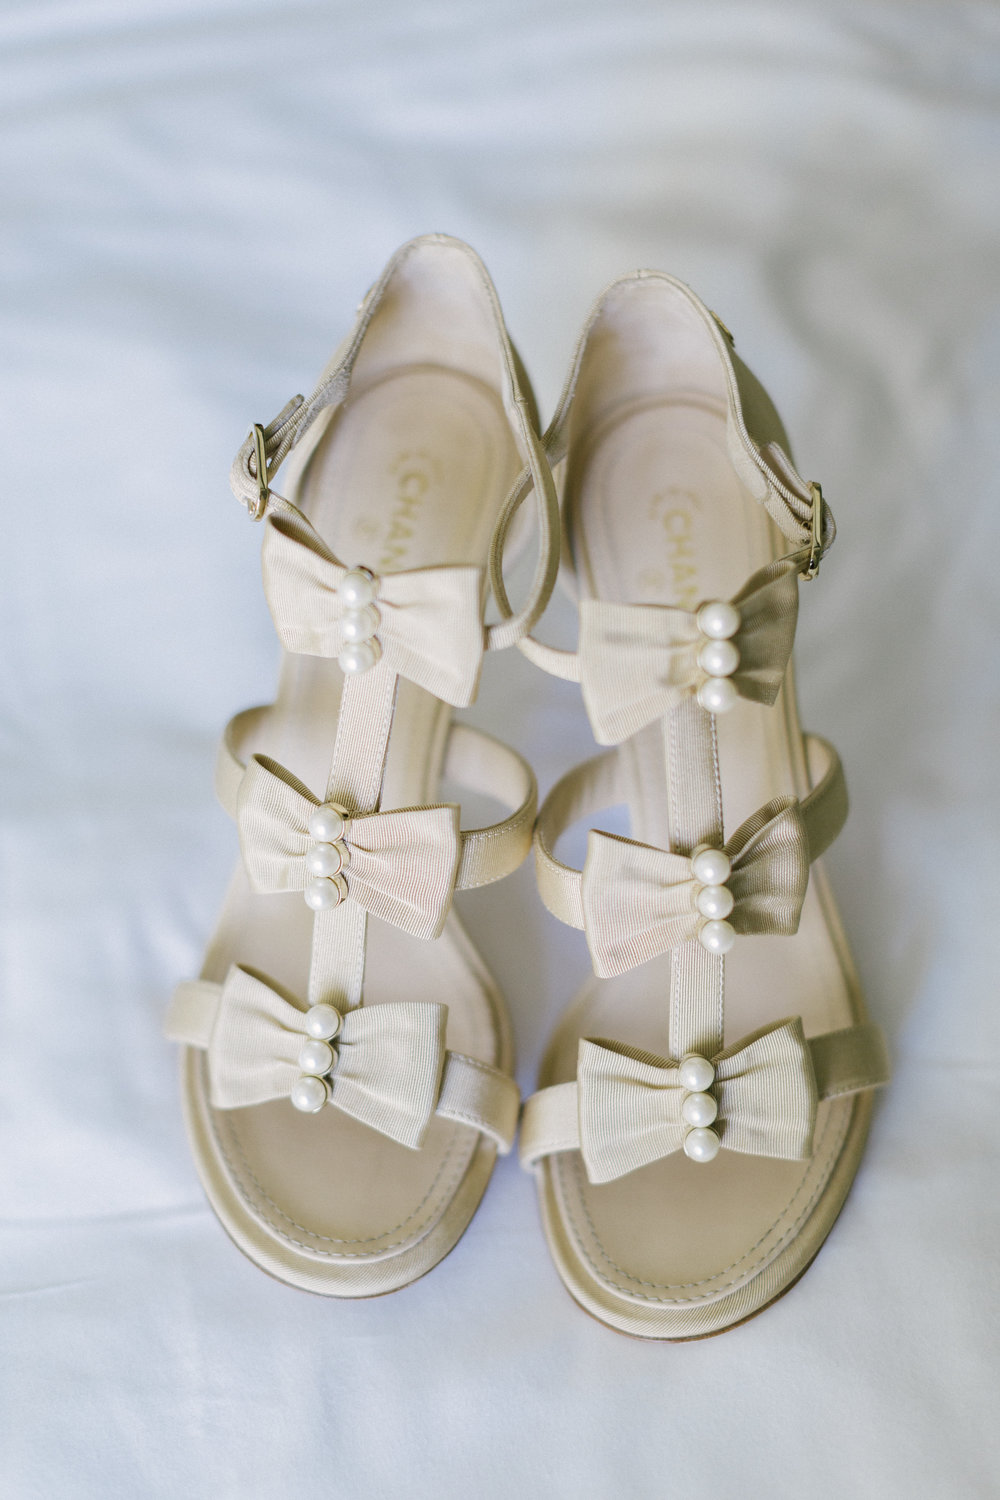 www.santabarbarawedding.com | Santa Barbara Courthouse | Canary Hotel | Aurelia D'Amore Photography | Bride's Shoes